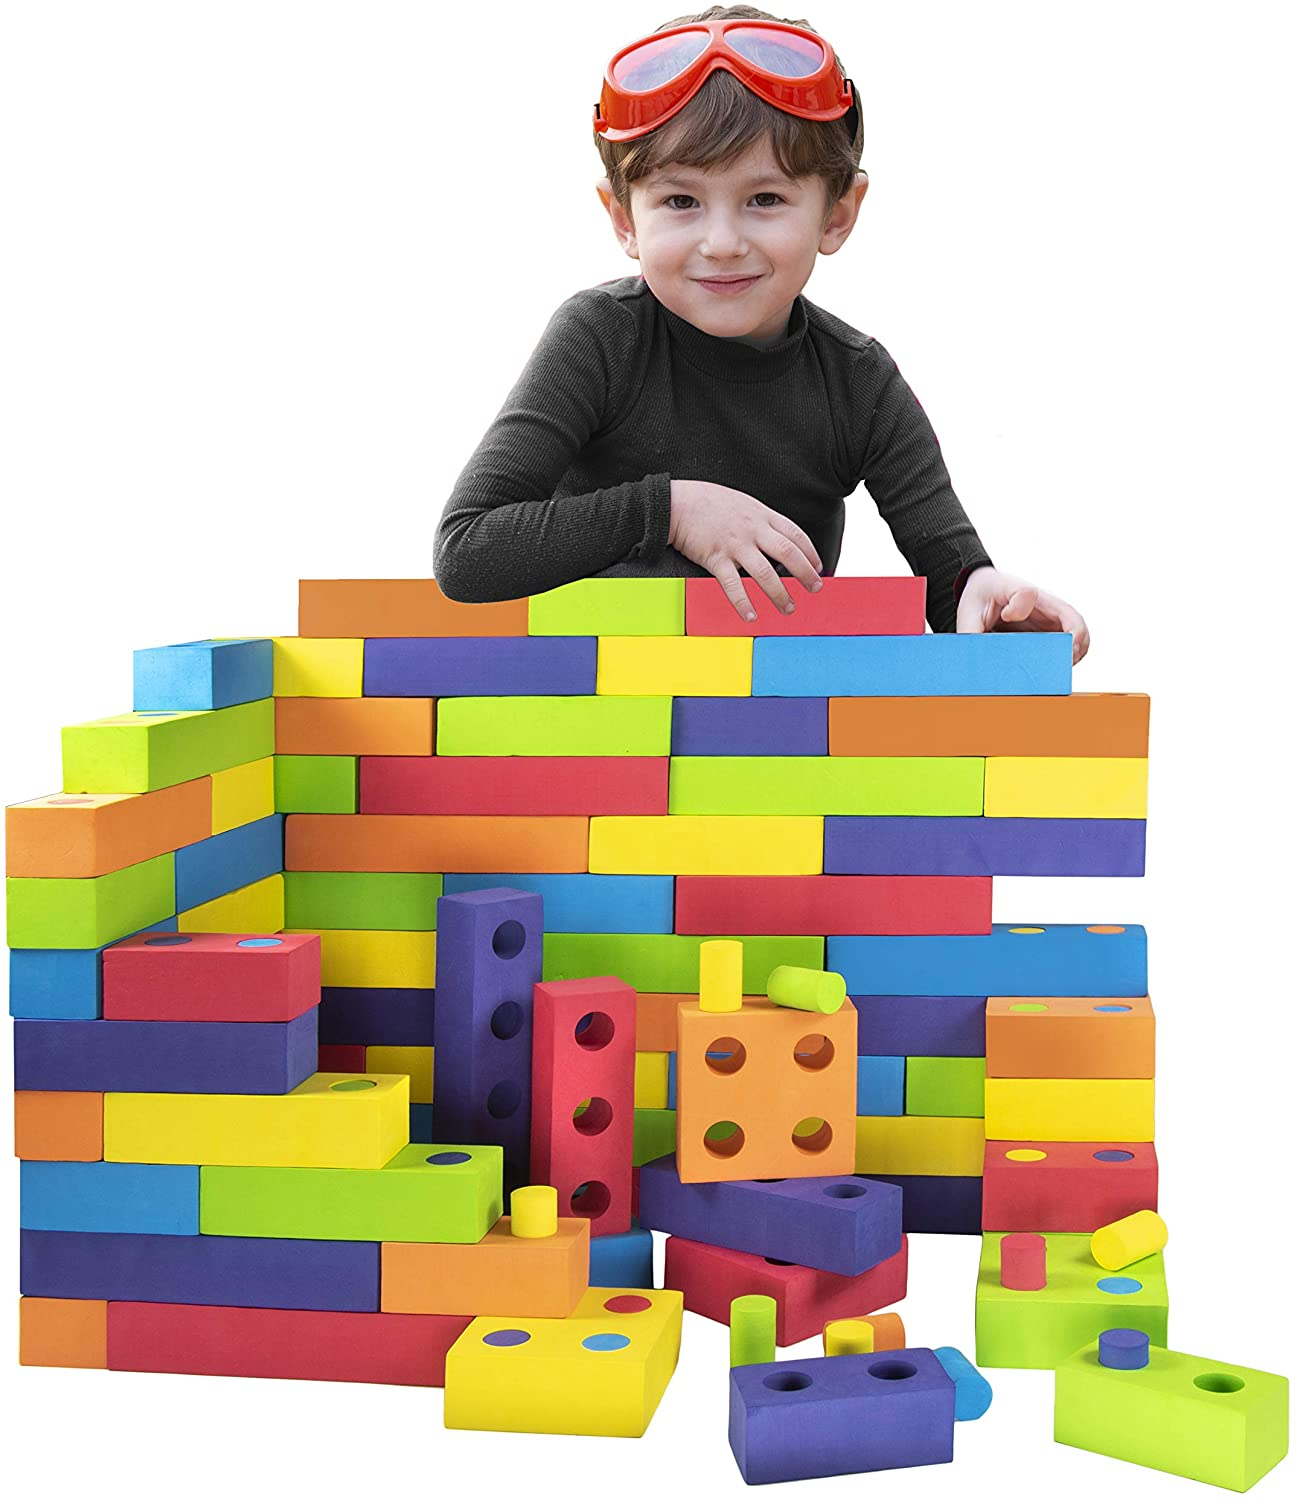 Playlearn Jumbo Foam Building Blocks with Peg Connectors – 180 Pieces - Multi-Colored Stacking Blocks for Kids – Safe Non-Toxic EVA Foam